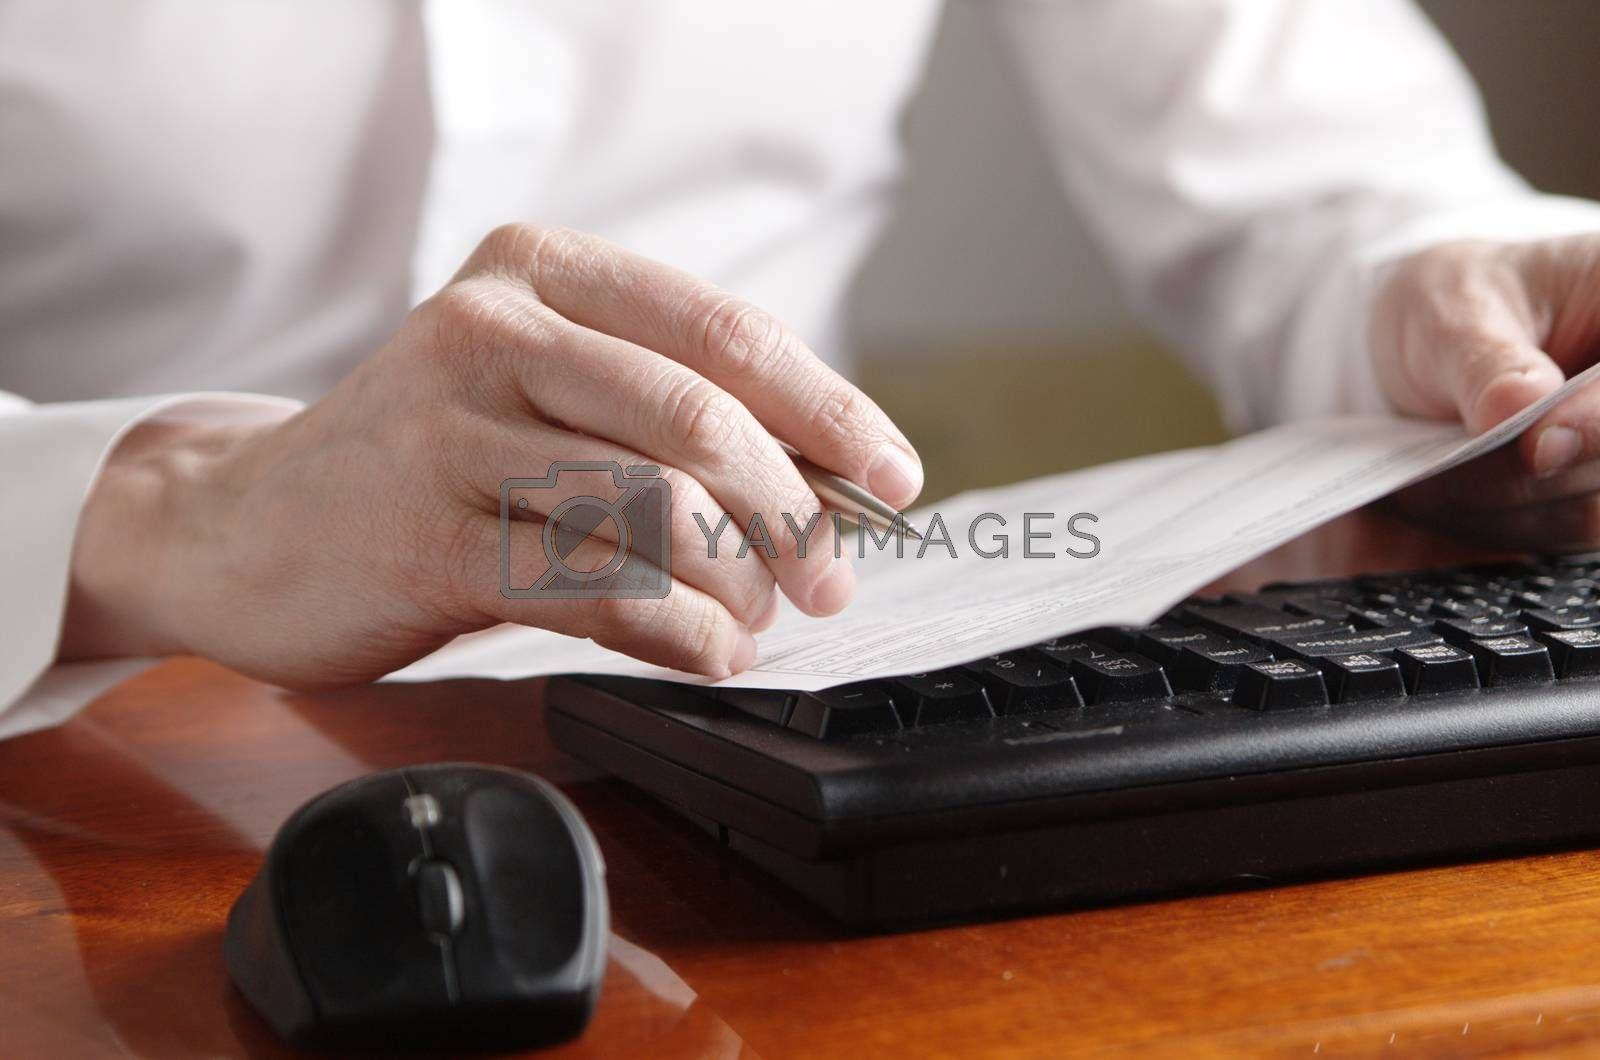 Royalty free image of Hands with document and pen on a computer keyboard by Ravenestling